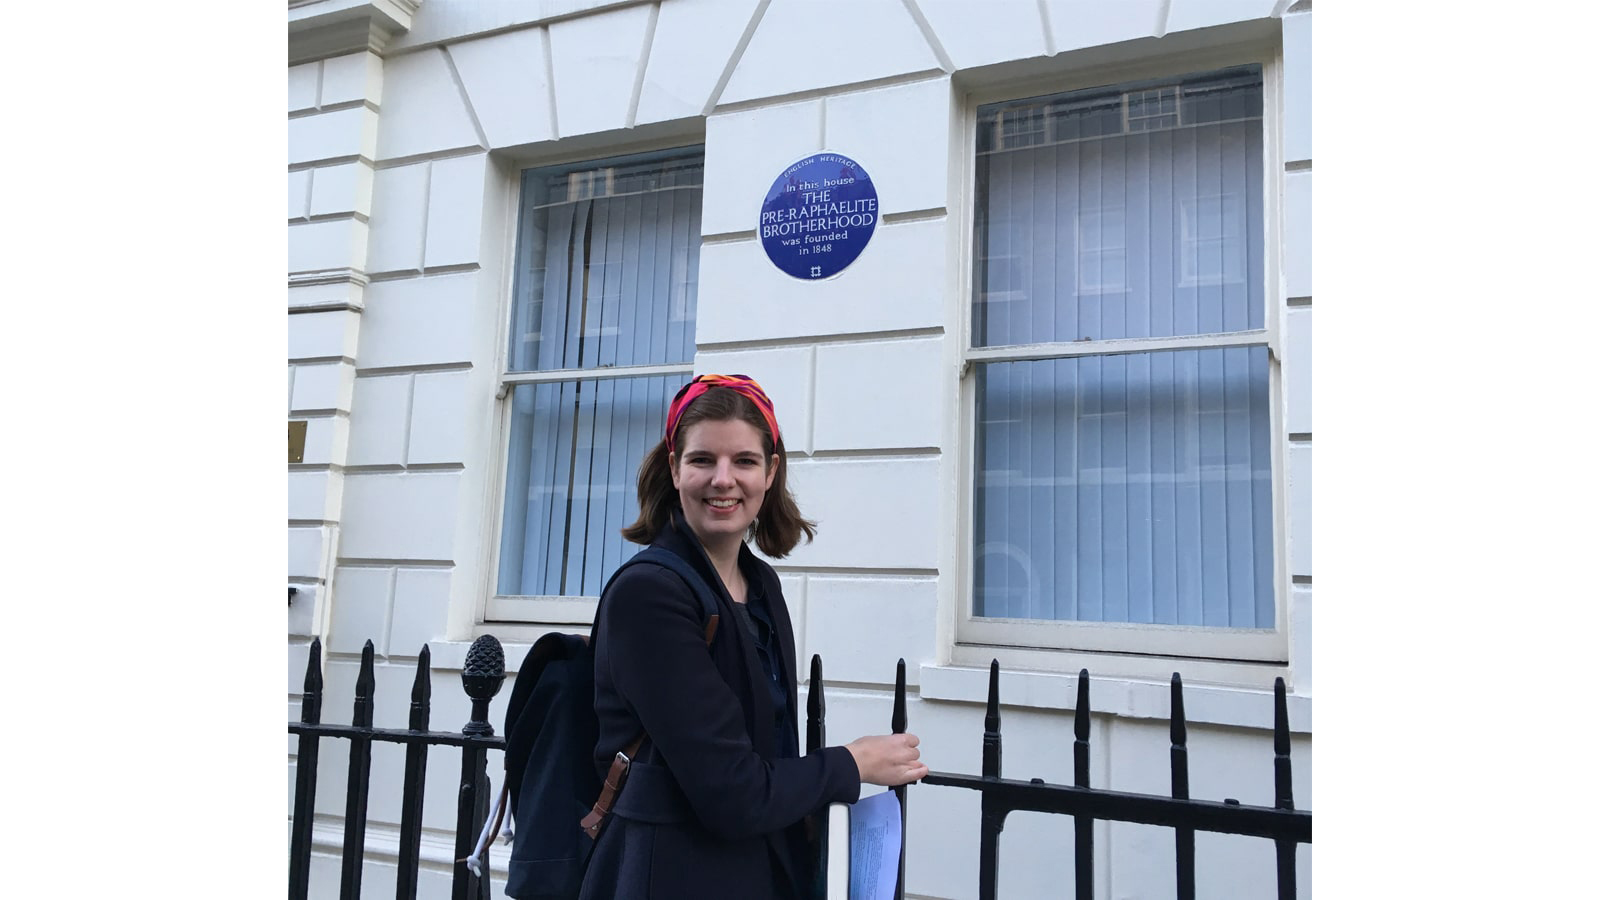 Elizabeth-Macneal-and-the-blue-plaque-at-7-Gower-Street